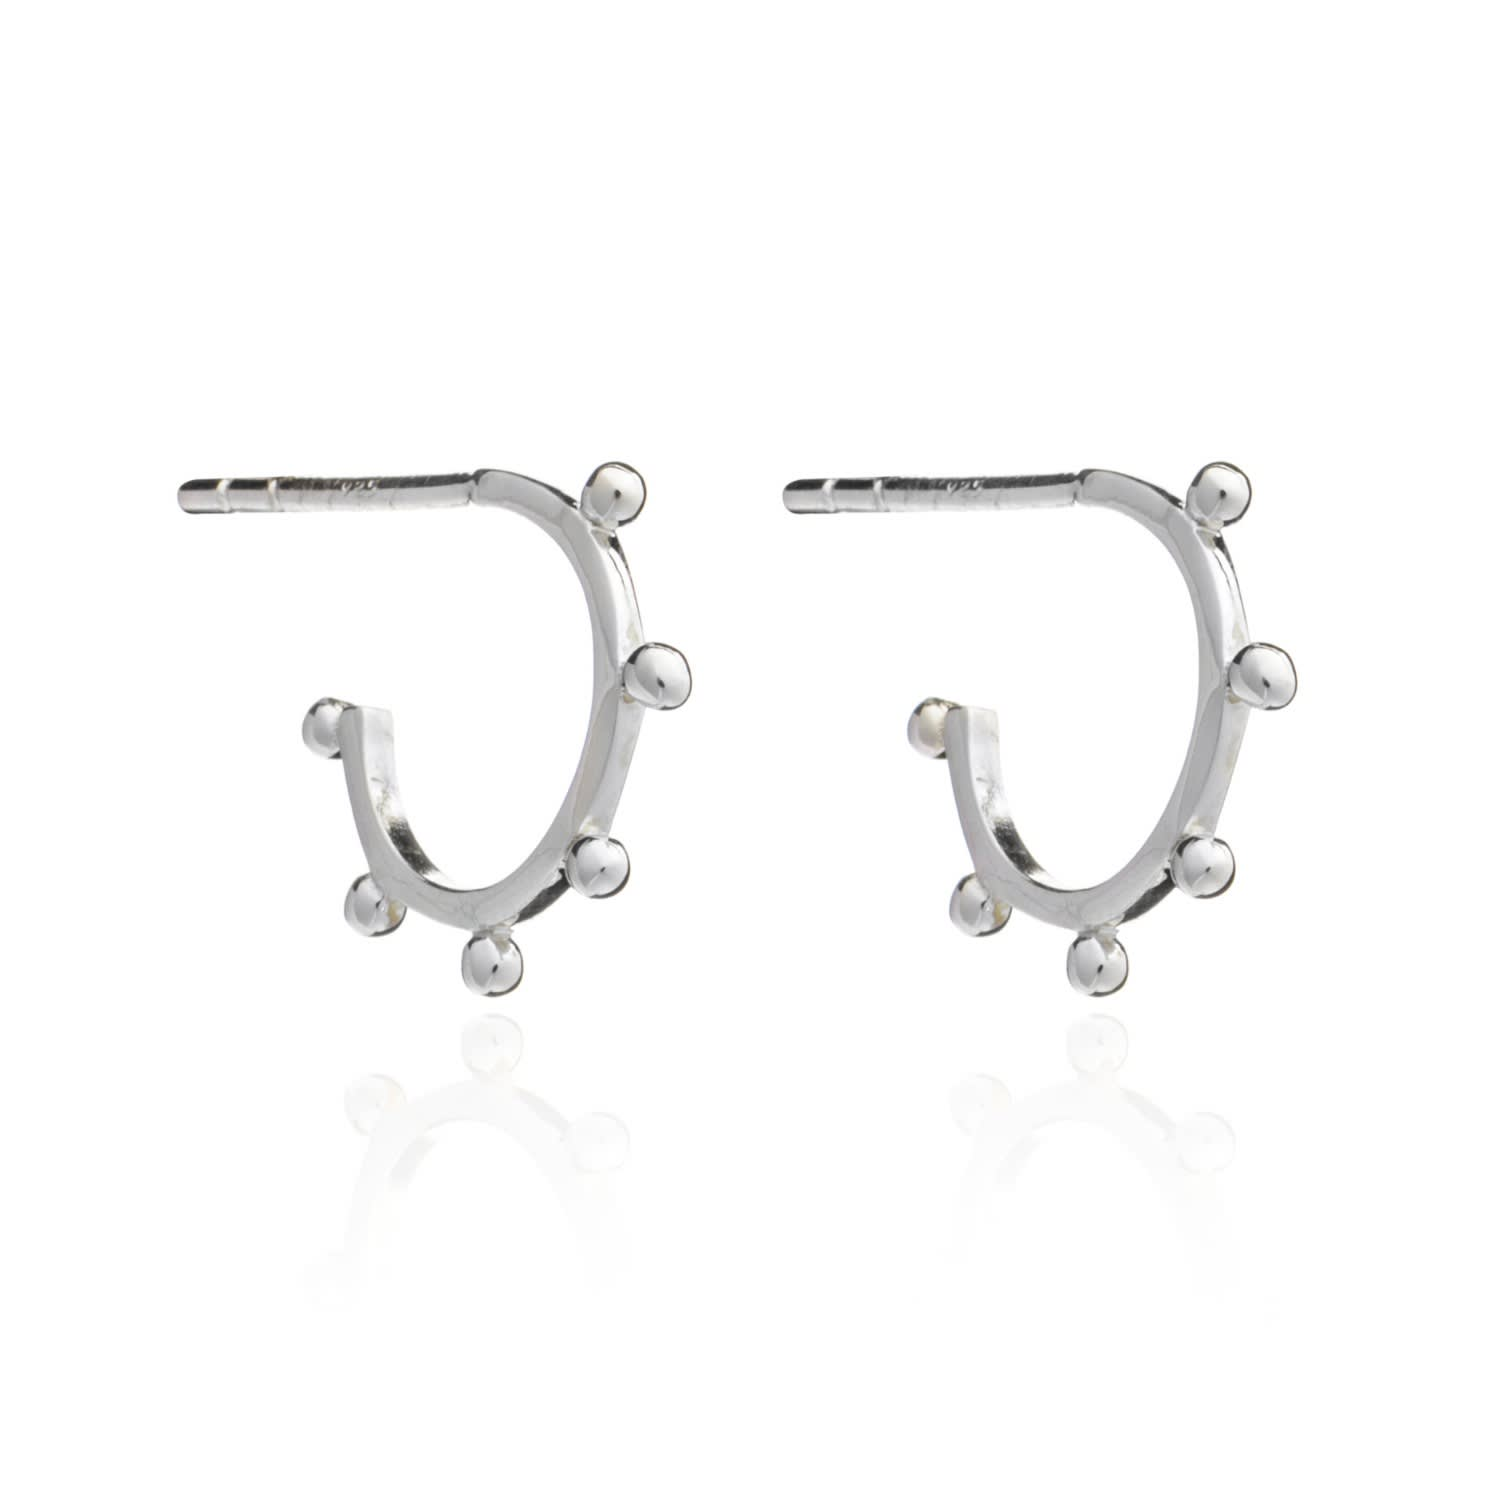 p hoop rhodium length earrings weight tube plated square grams sterling width silver